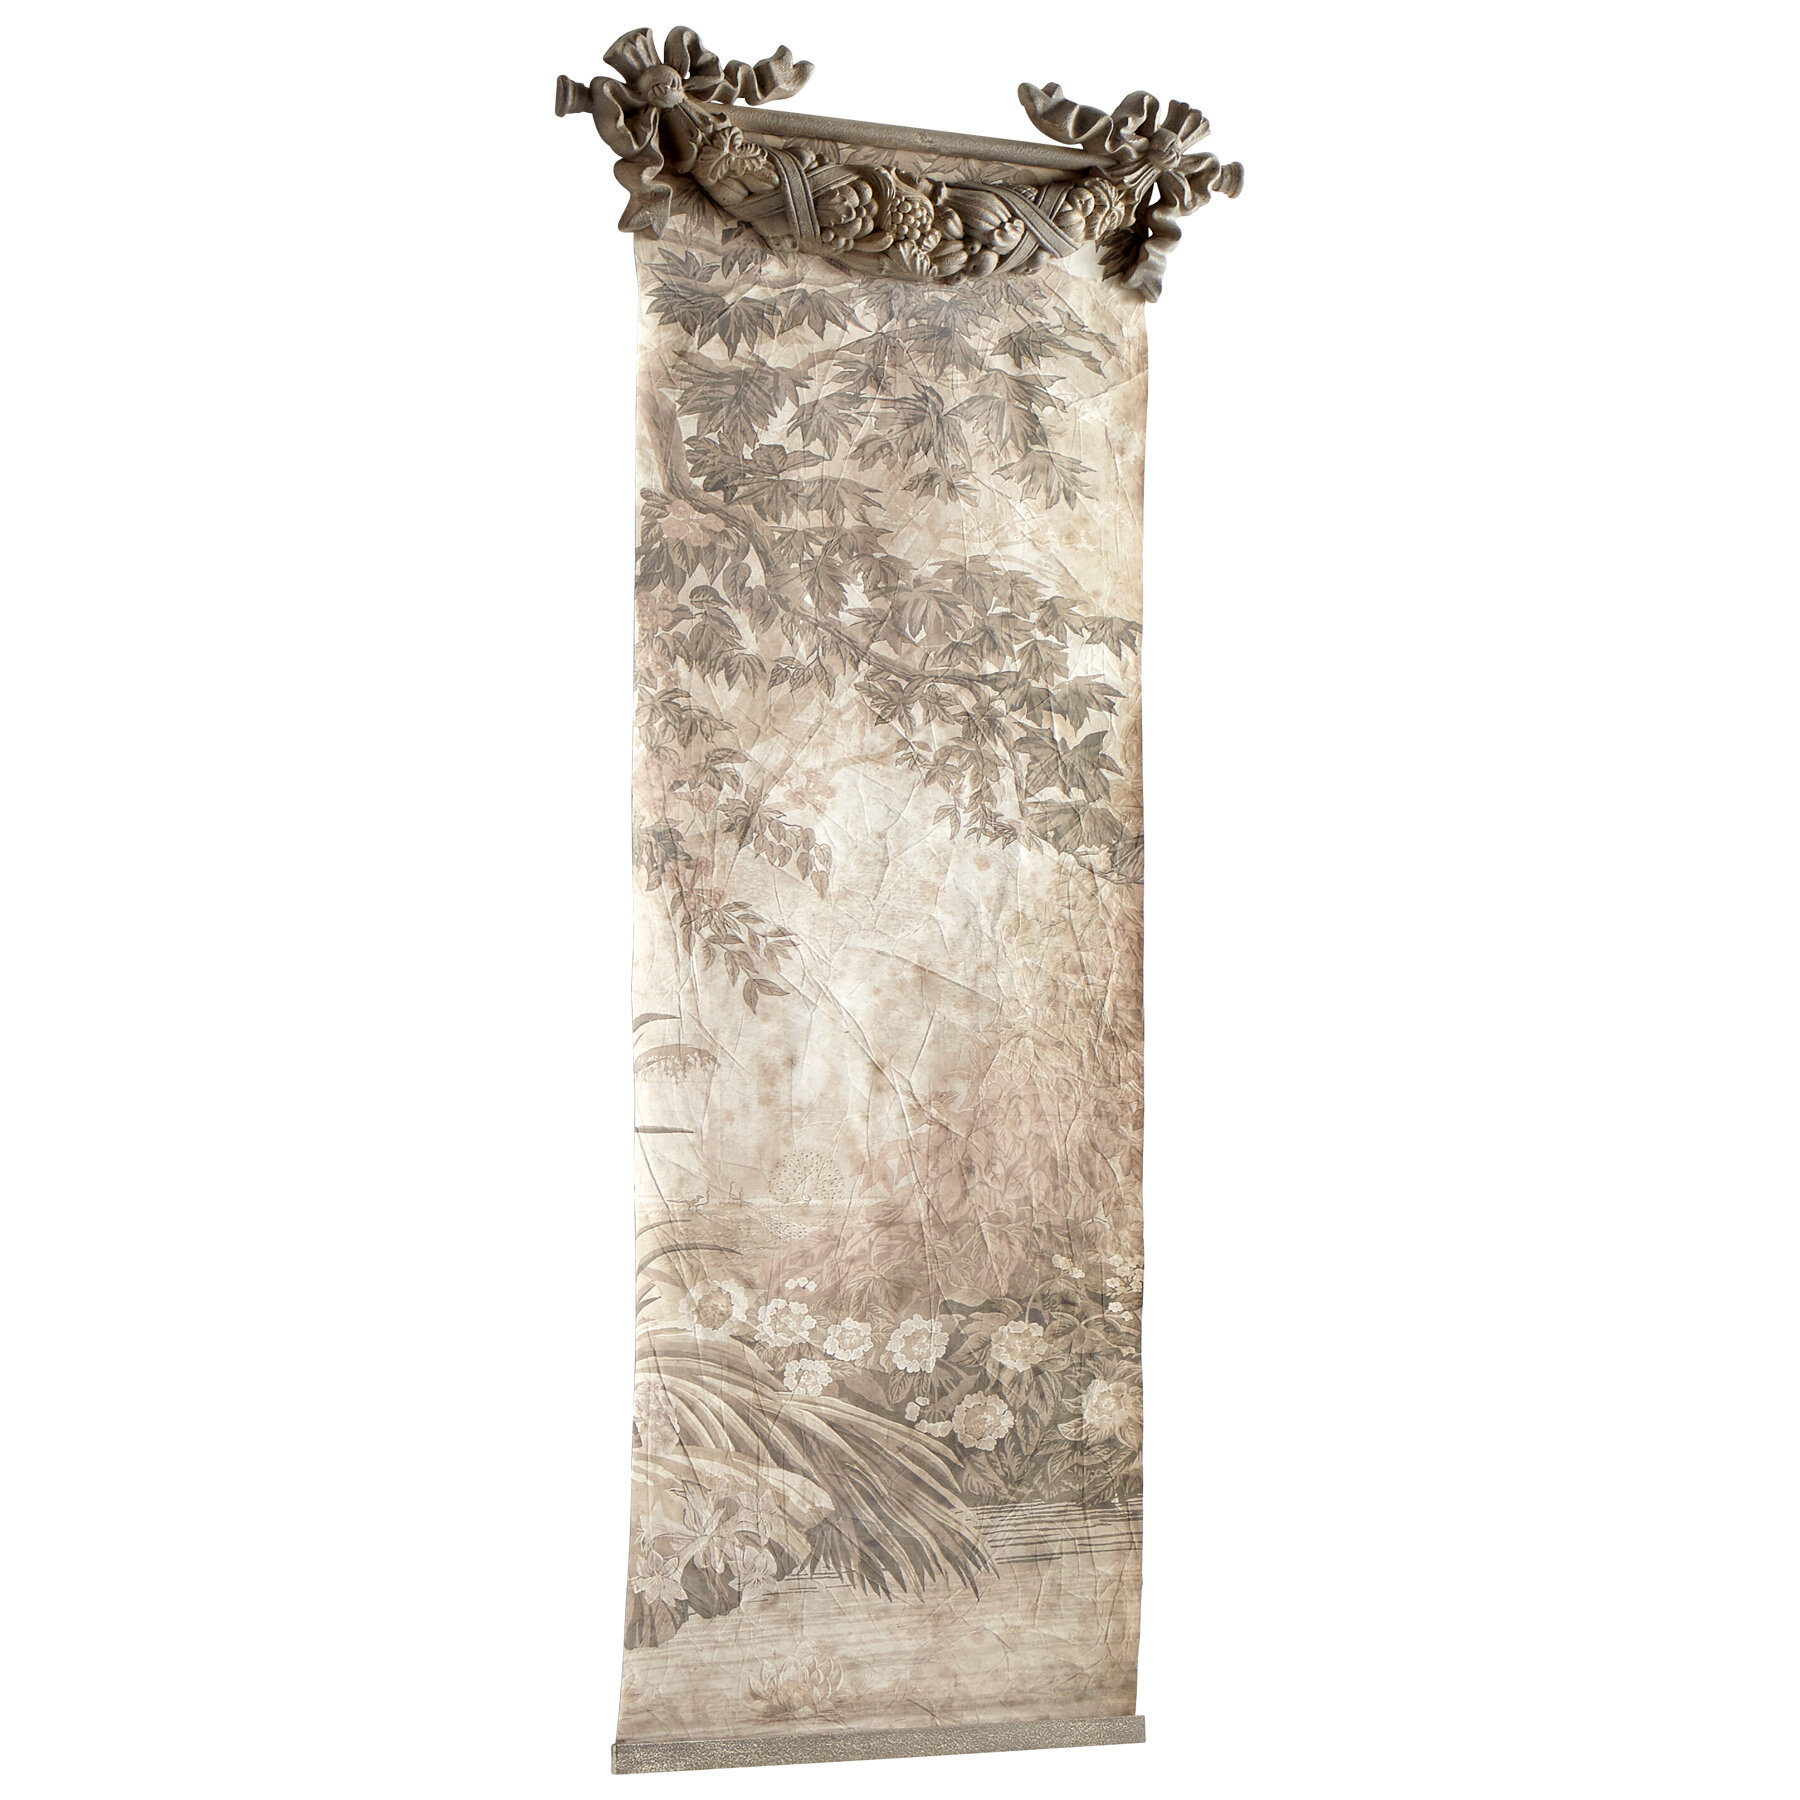 Blended Fabric Hidden Garden Chinoiserie Wall Hanging With Rod With Regard To Current Blended Fabric Wall Hangings With Rod Included (View 12 of 20)